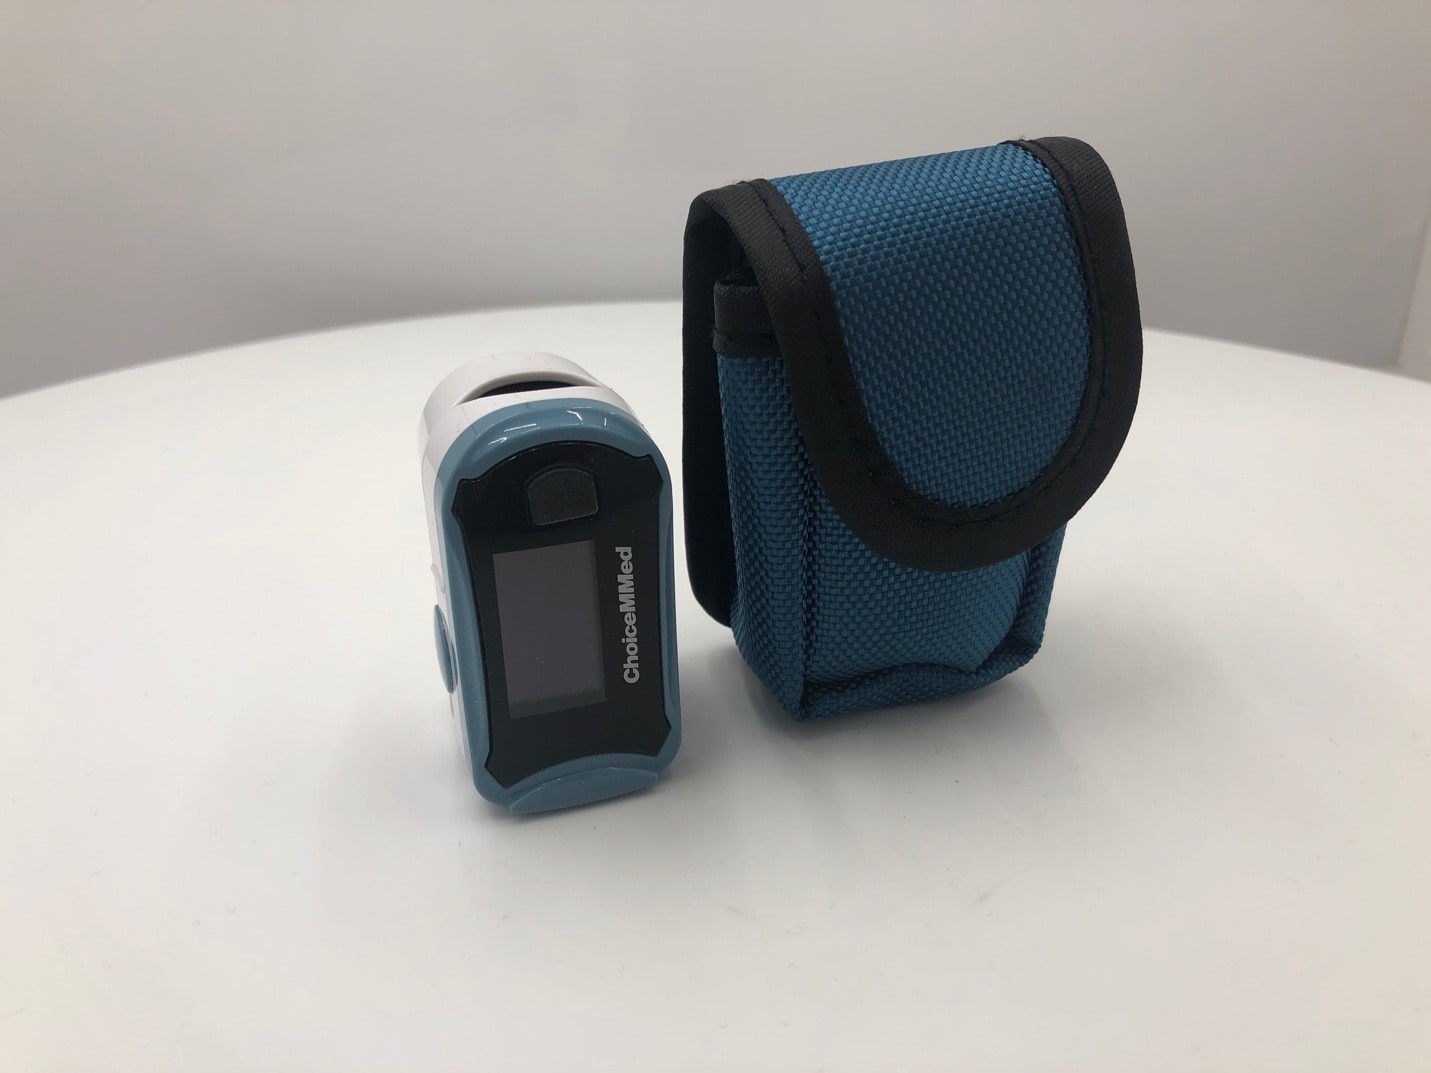 The image of Pulse Oximeter and its cover.